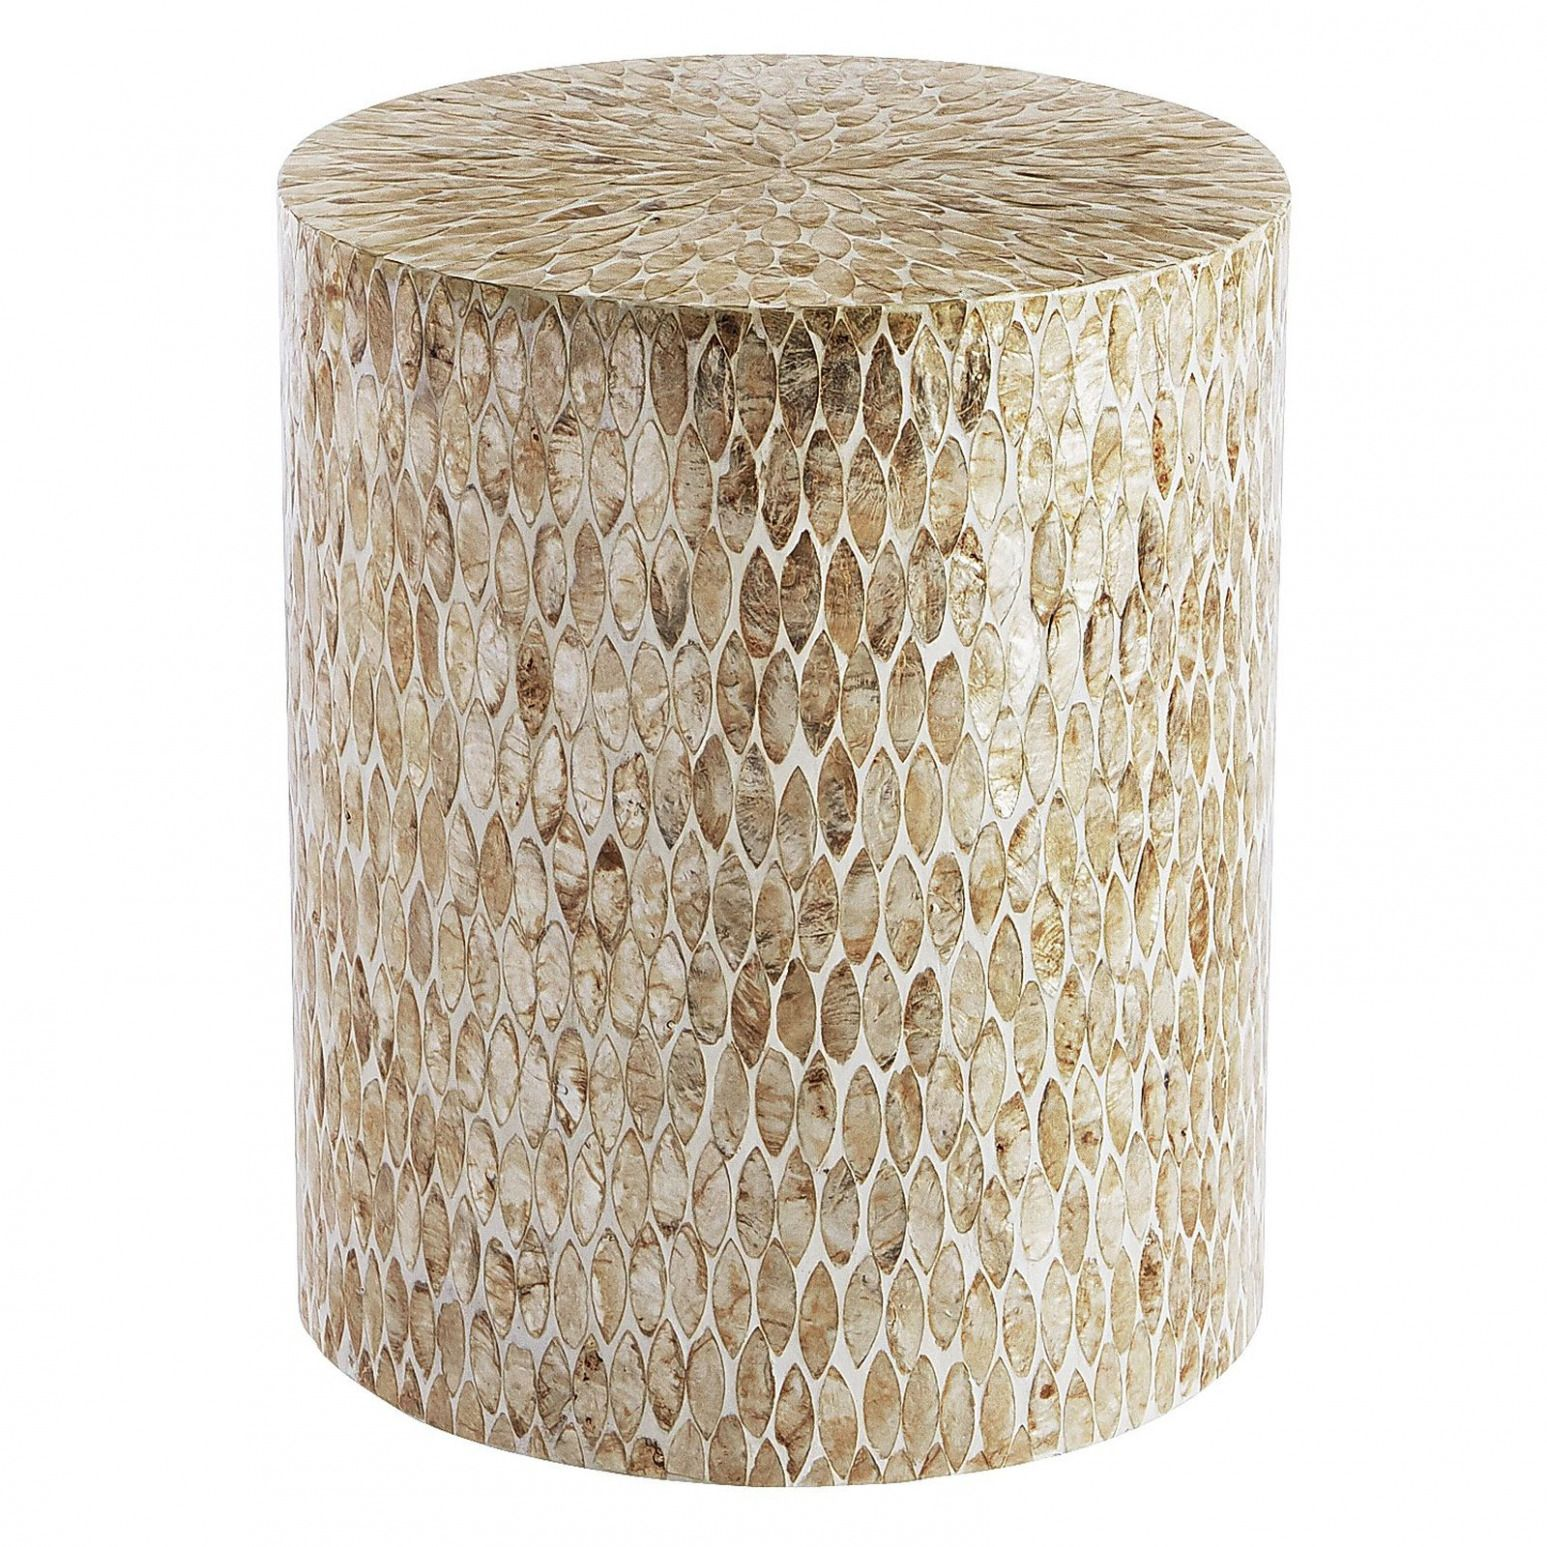 100+ Round Drum End Table - Best Way to Paint Furniture Check more at http://livelylighting.com/round-drum-end-table/